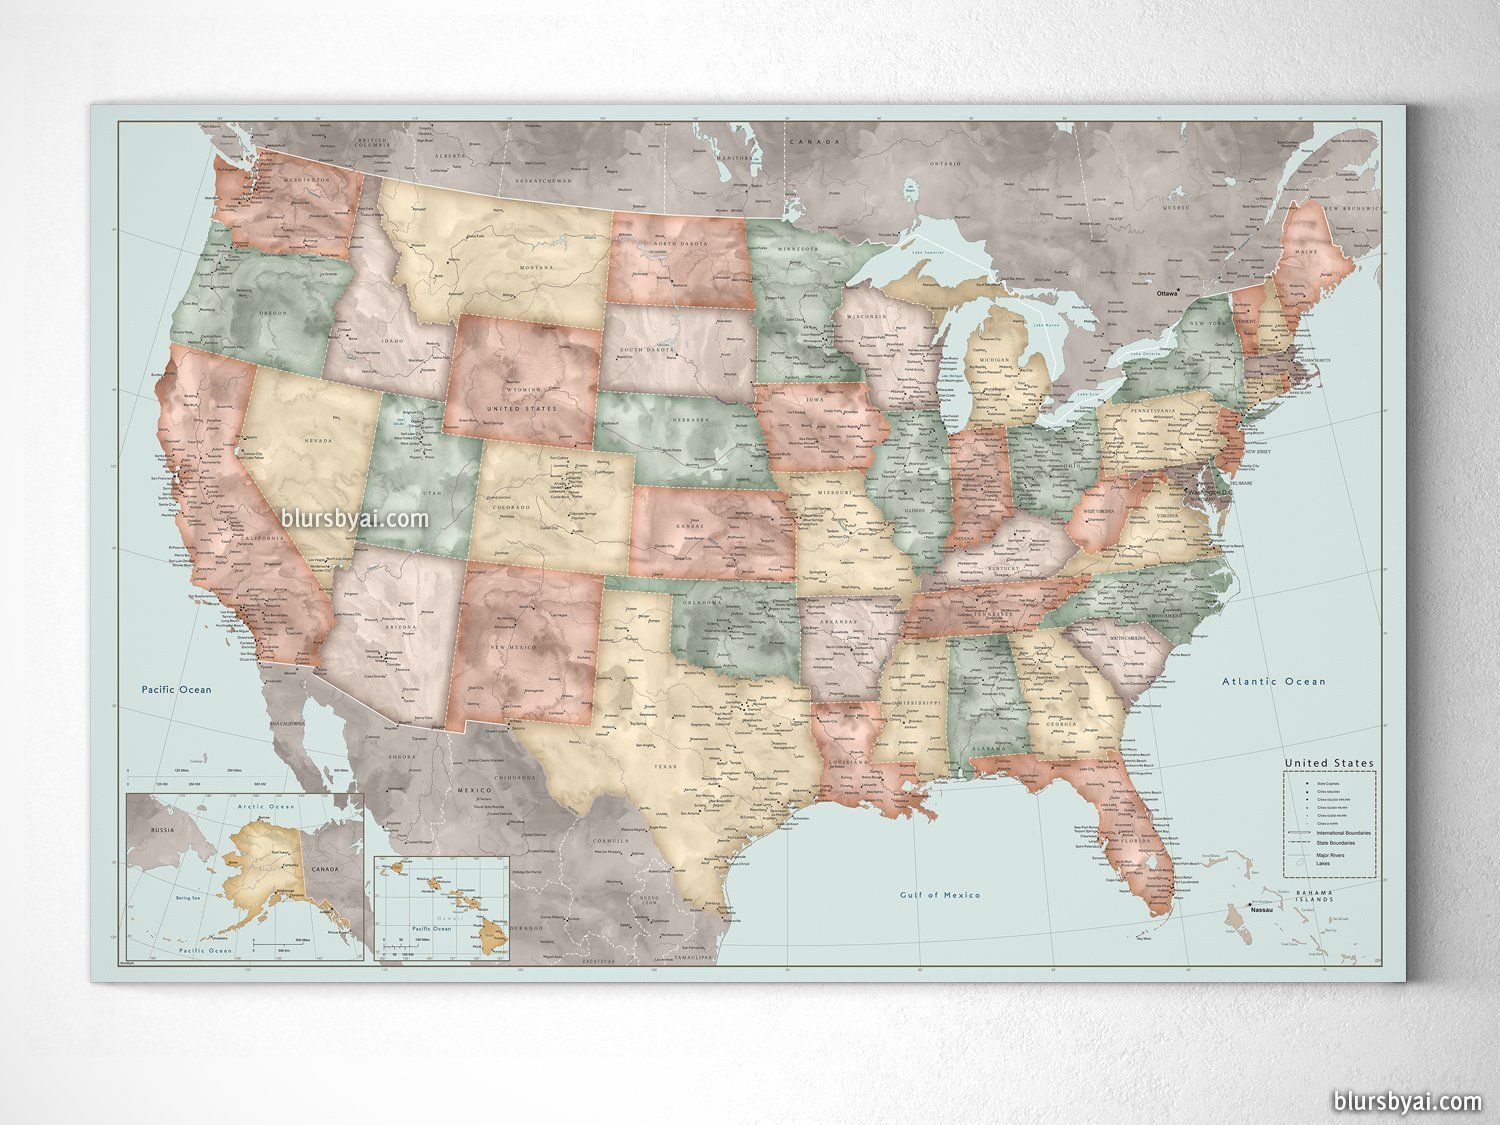 Personalized Usa Map.Personalized Vintage Inspired Watercolor Usa Map With Cities Canvas